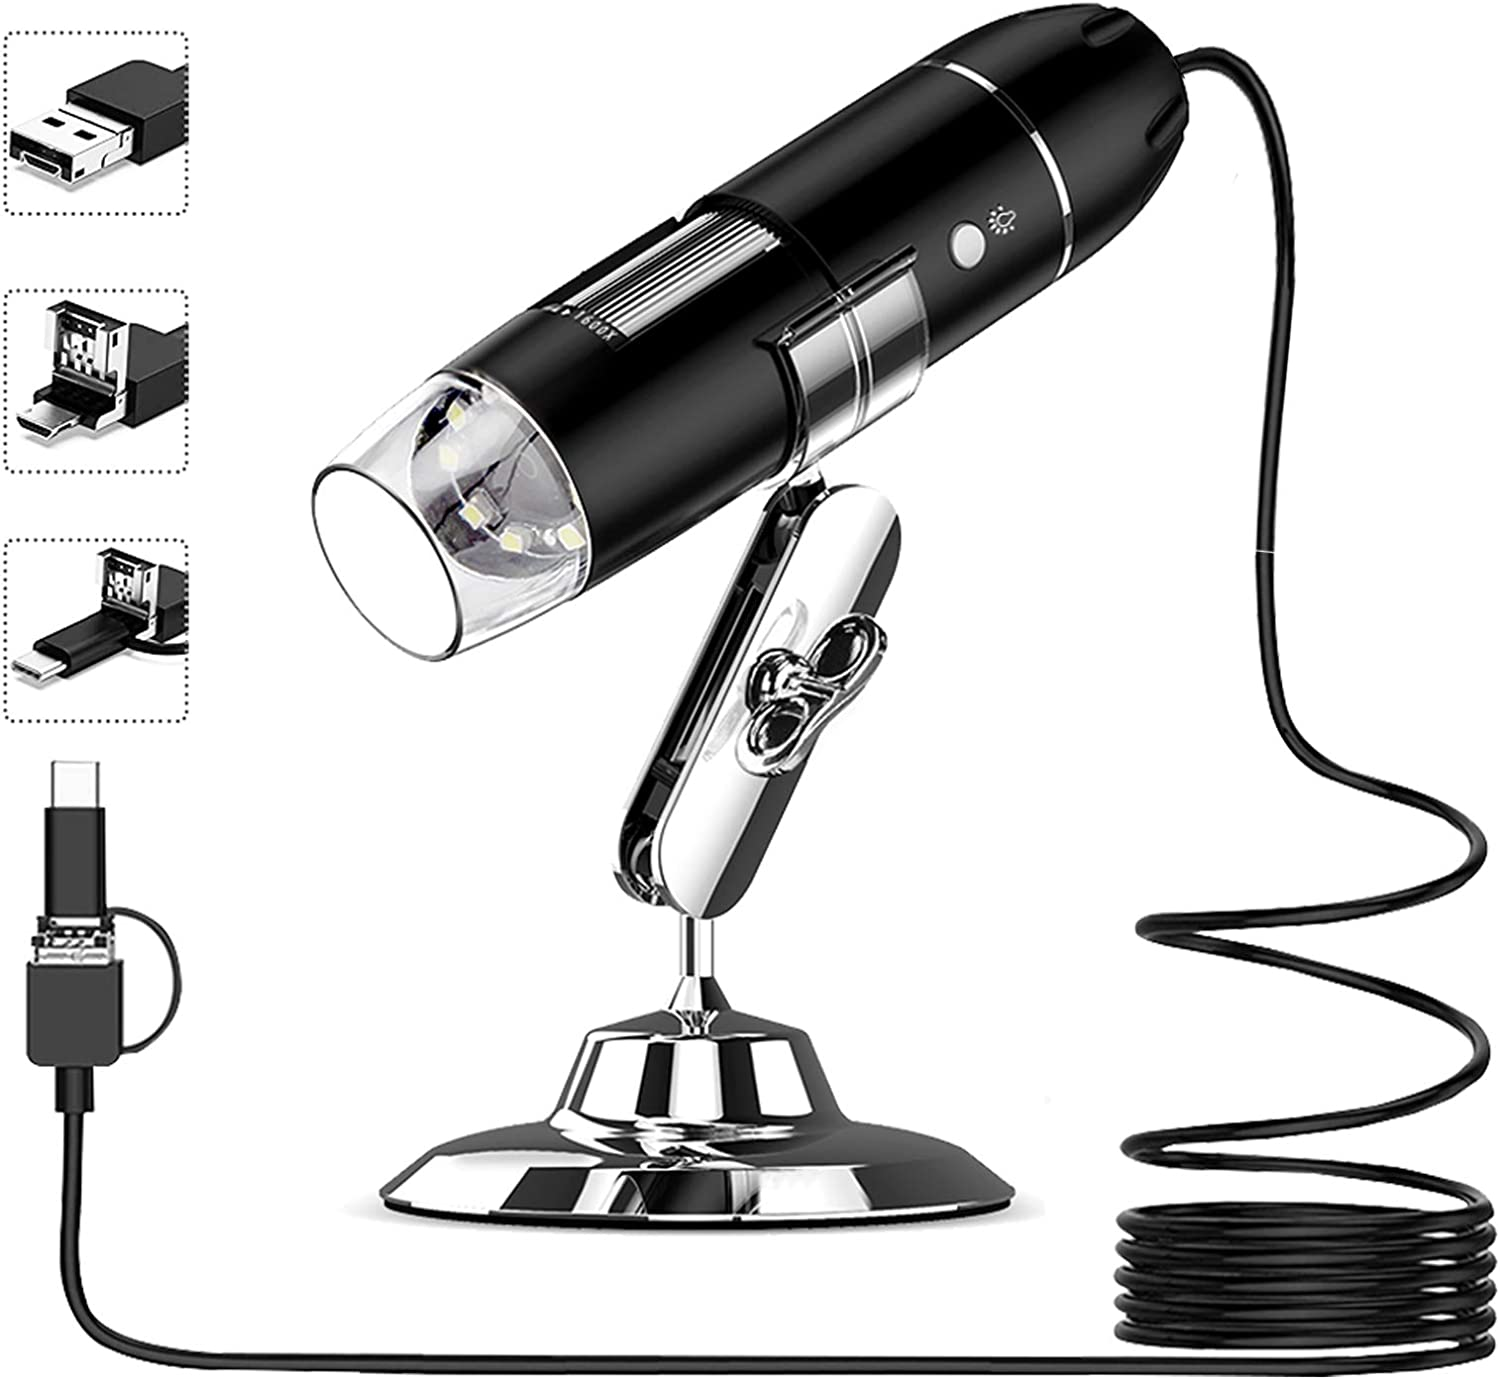 USB Digital Microscope 50X to 1600X, 8 LED Magnification Microscope Camera, with OTG Adapter and Metal Stand, Compatible with Mac Window 7/8/10 Android Linux, Handheld USB Phone Microscope : Camera & Photo